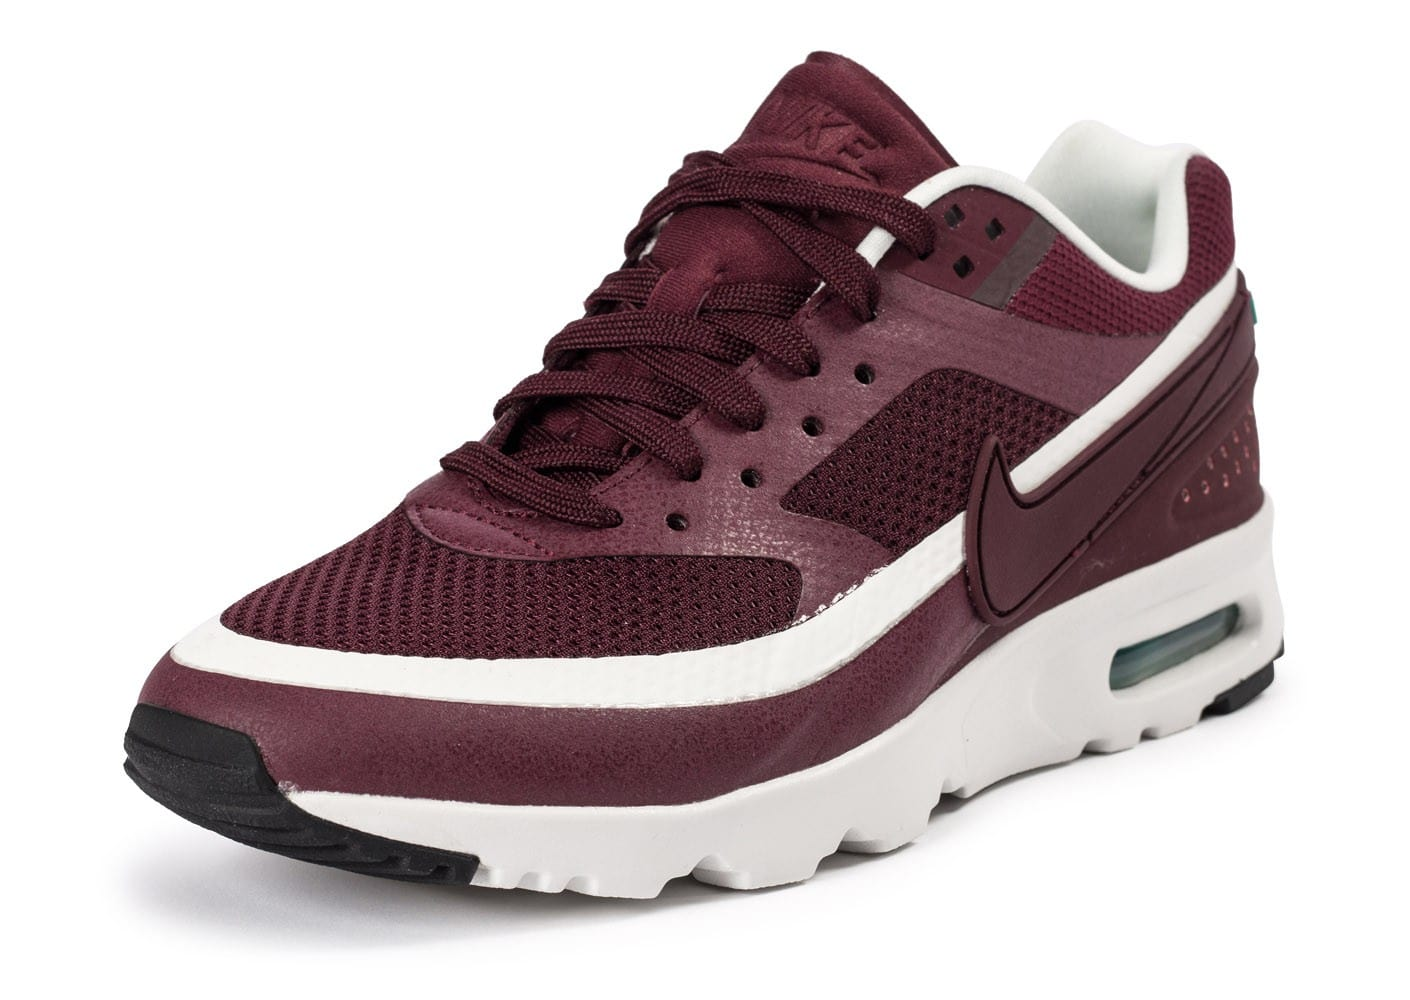 online store 86939 0b367 chaussures nike air max bw ultra w bordeaux vue avant